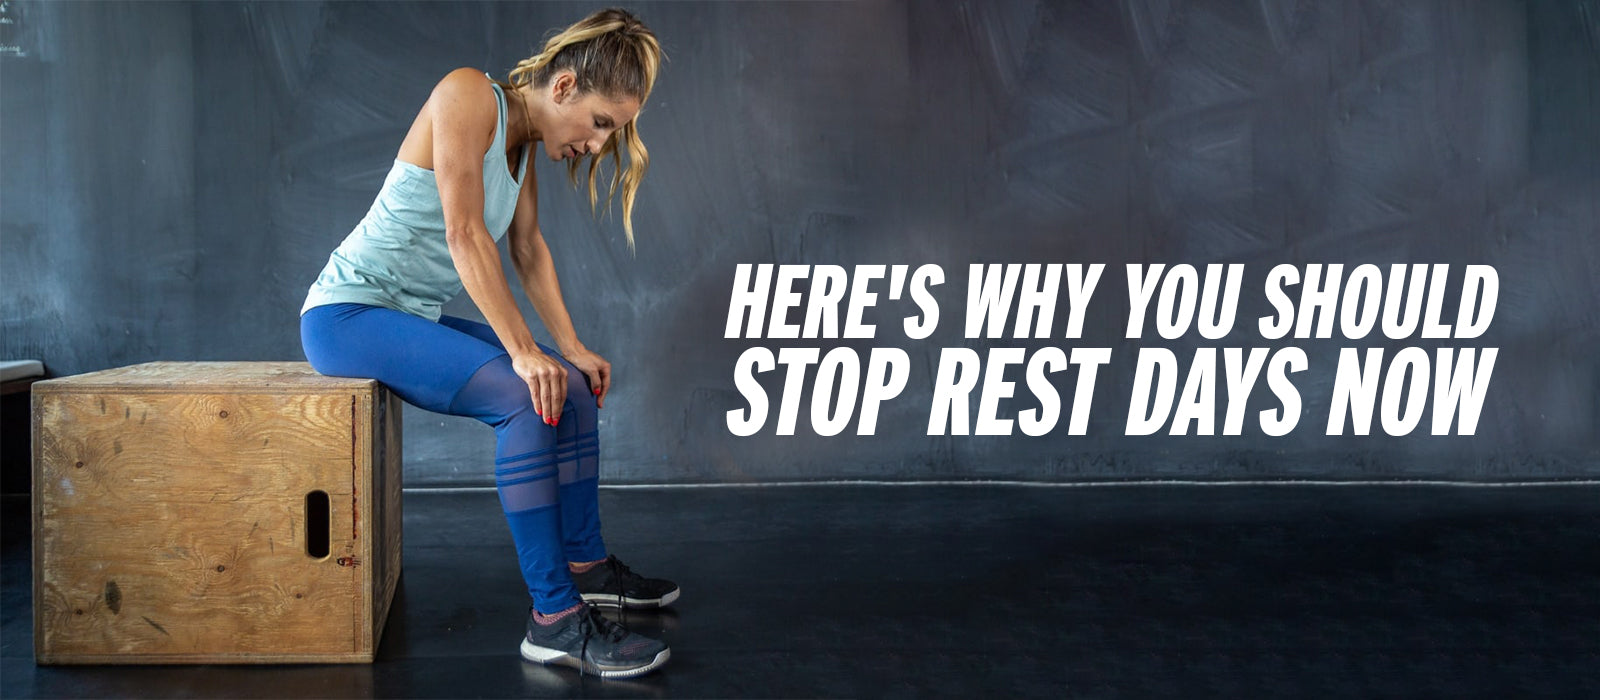 Here's Why You Should Stop Rest Days Now!